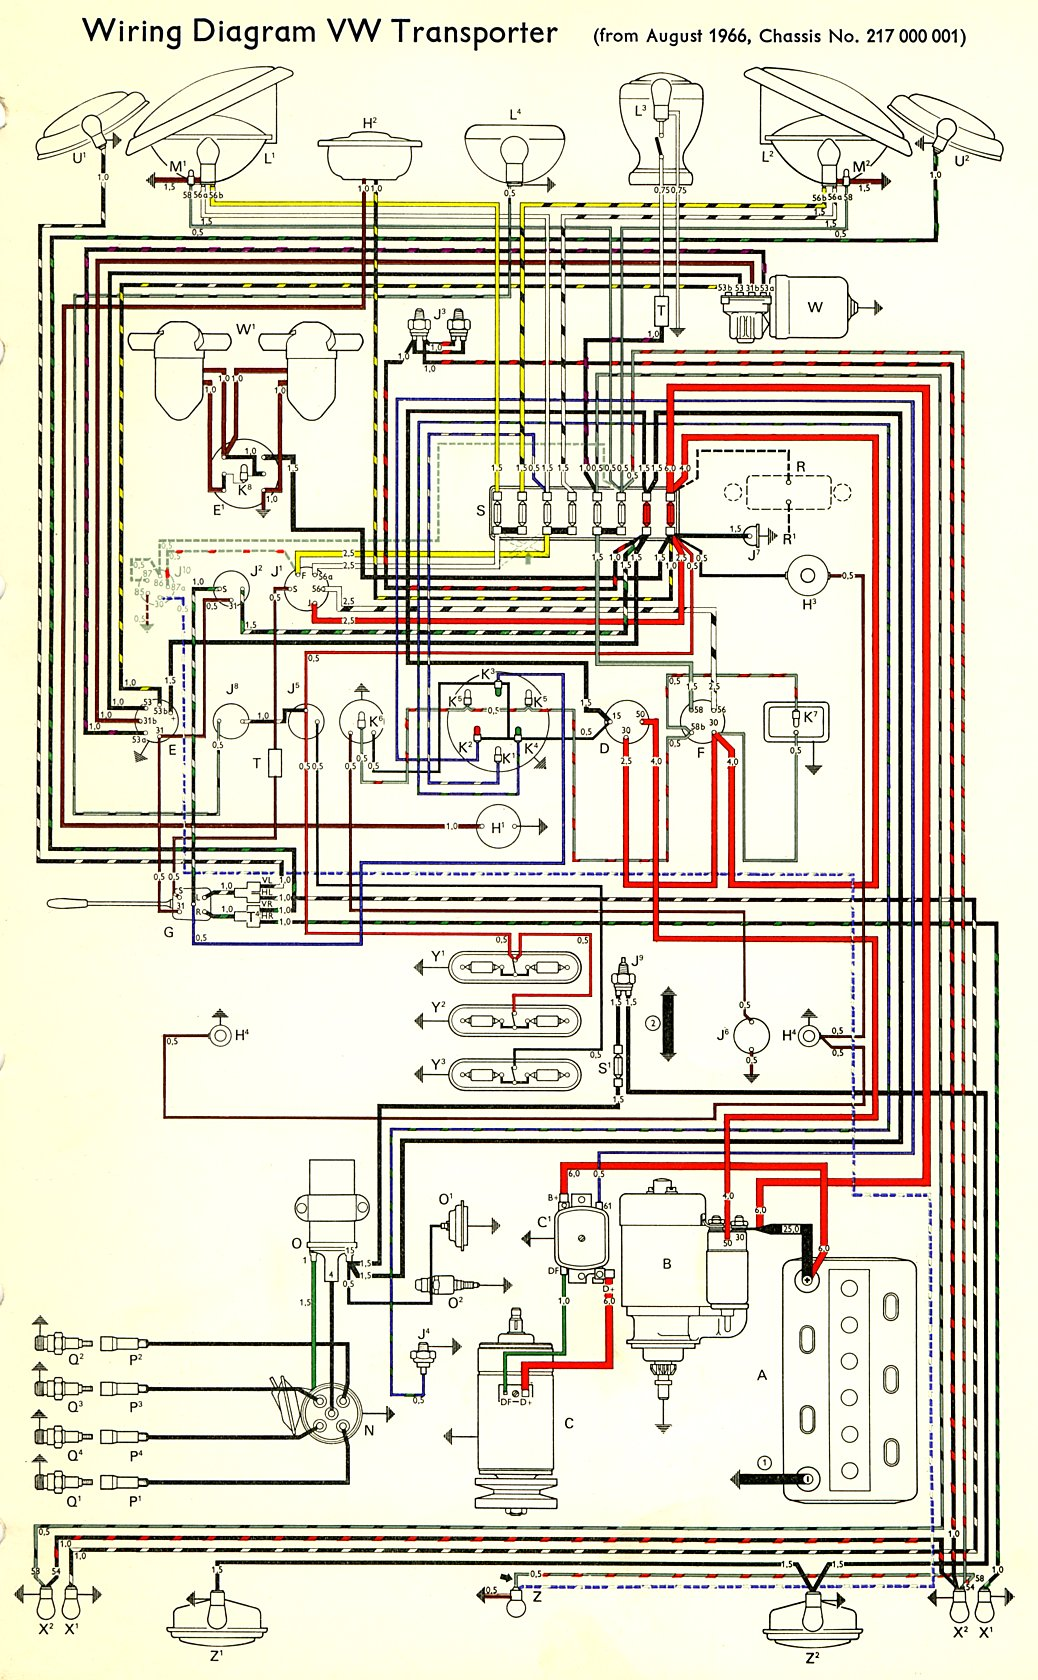 1967 Vw Wiring Diagram - DIY Enthusiasts Wiring Diagrams •